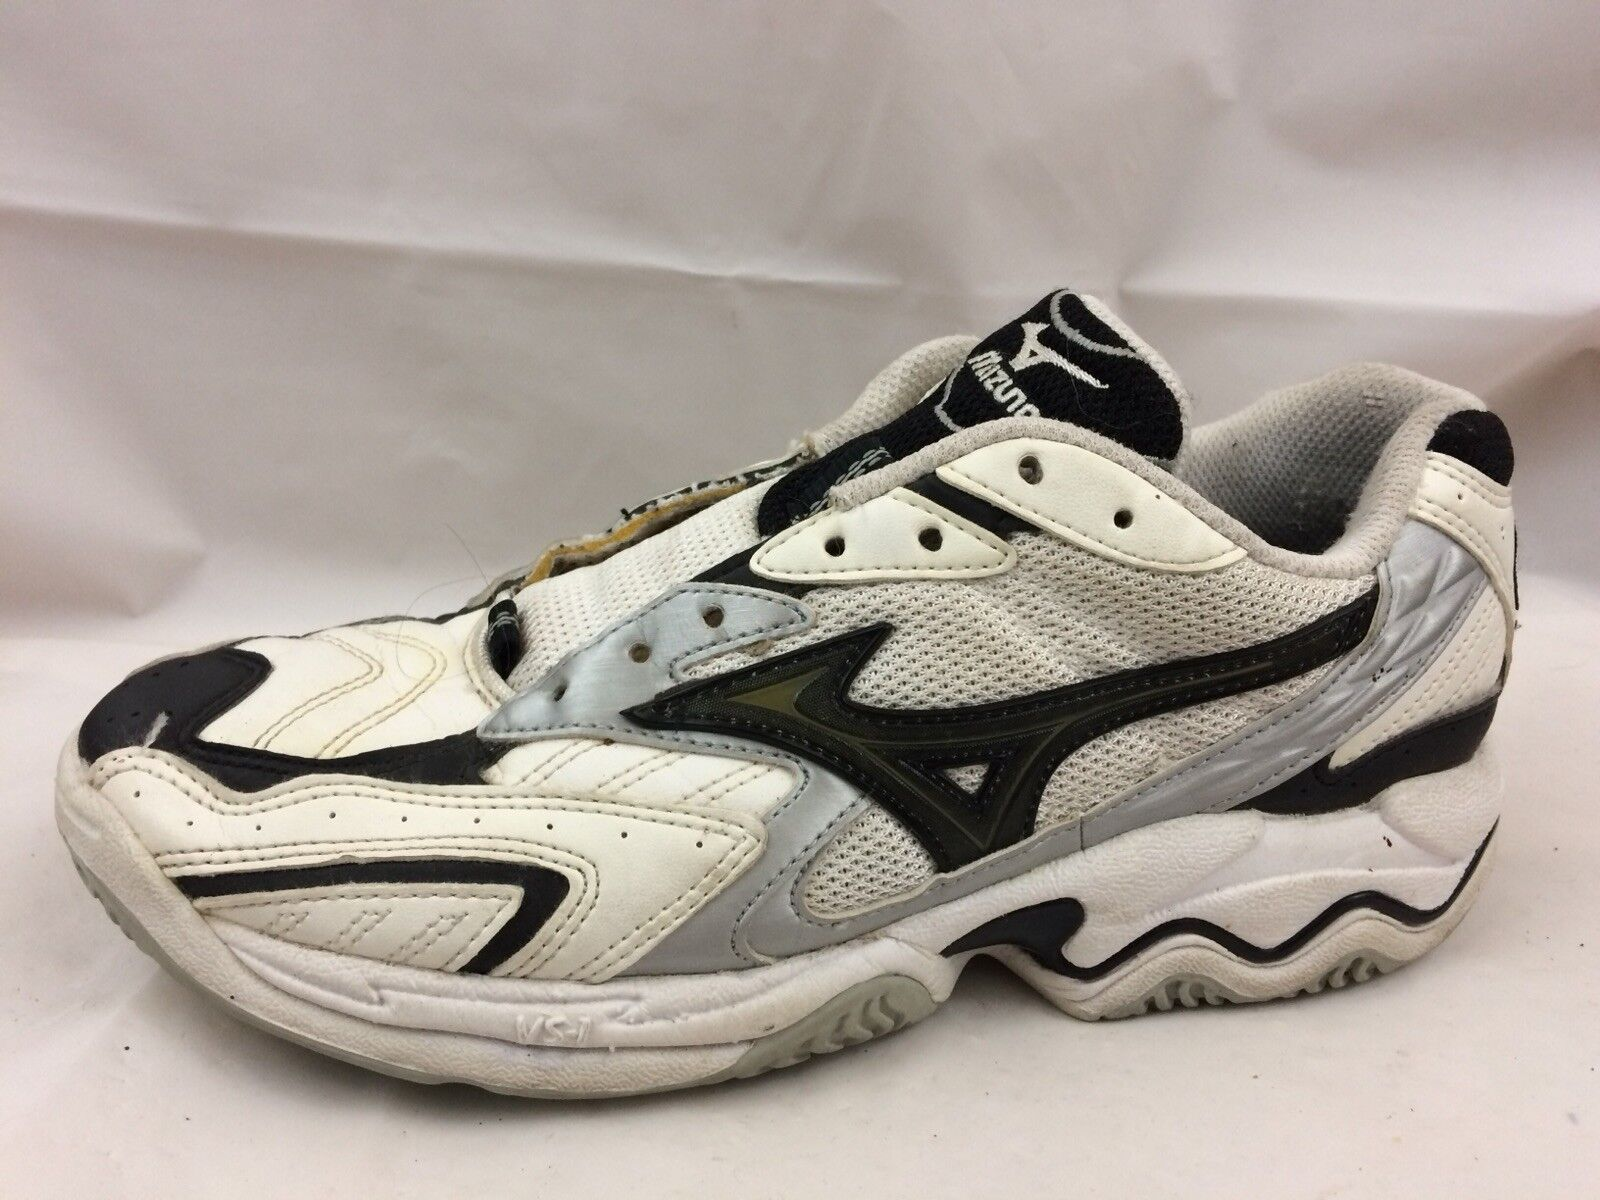 Womens 7.5 Med Volleyball shoes Sneakers White Black Silver Faux Leather